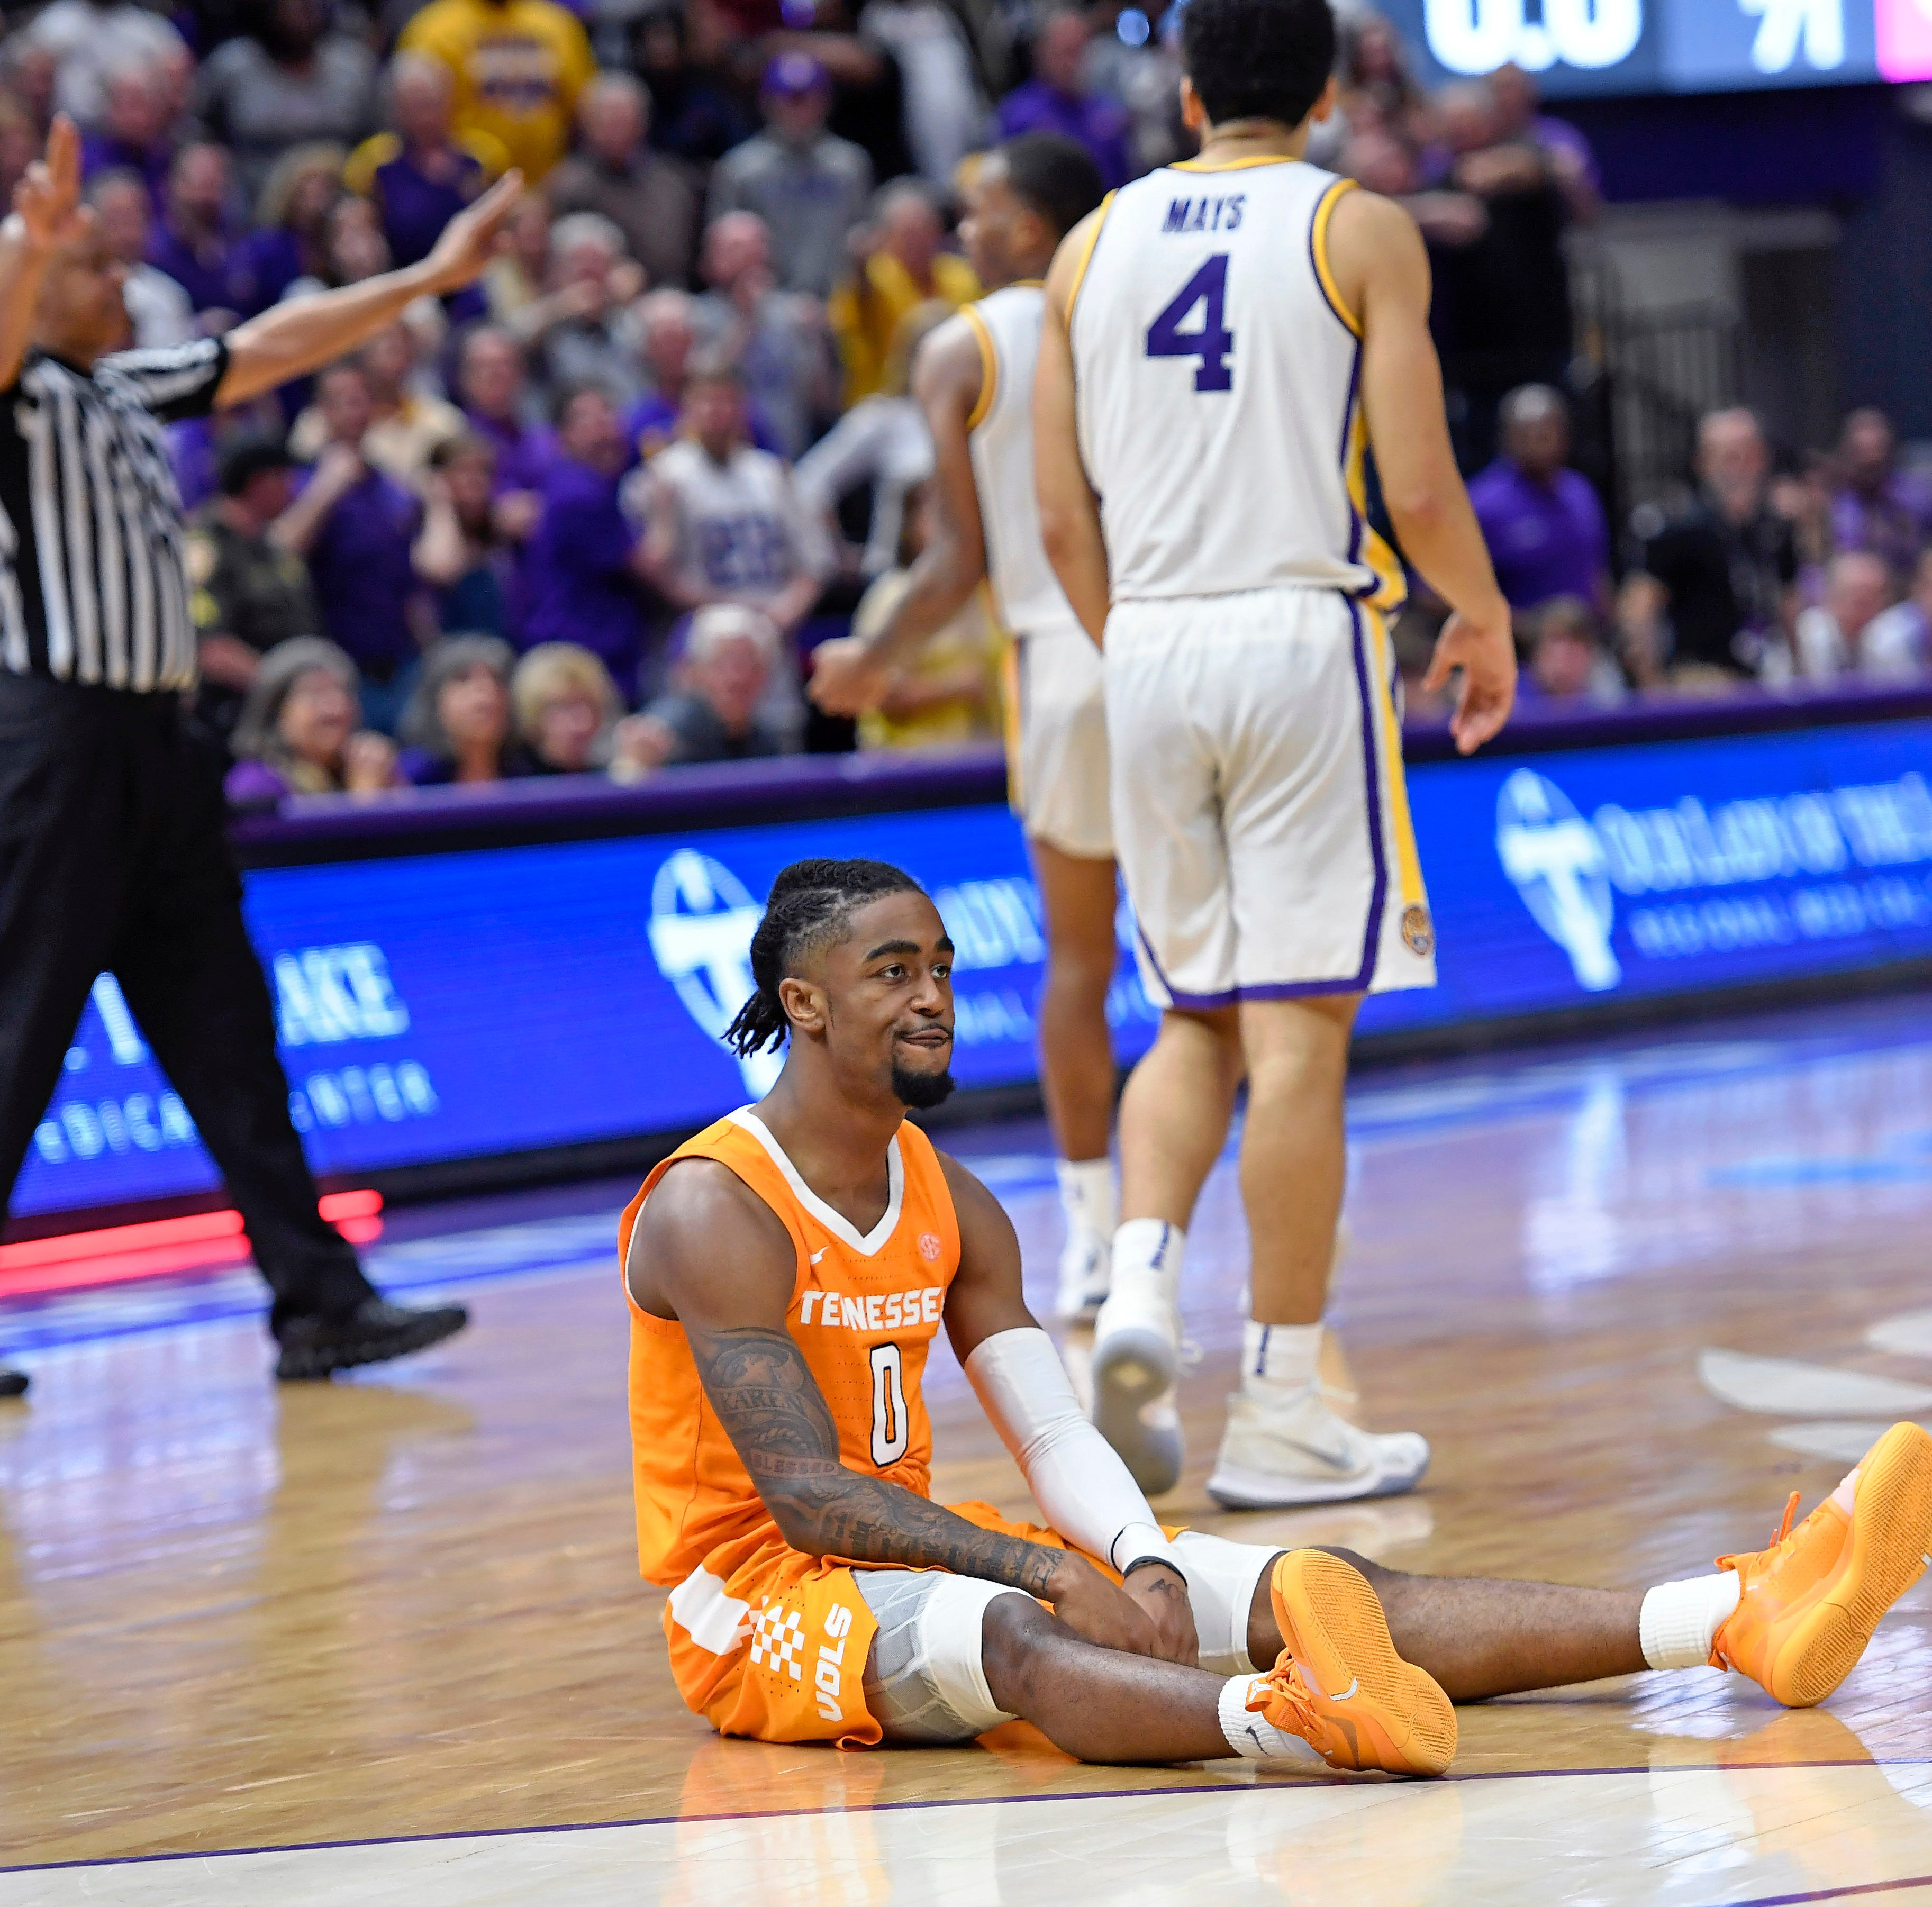 Tennessee basketball sees game slip away vs LSU in overtime, loses SEC lead